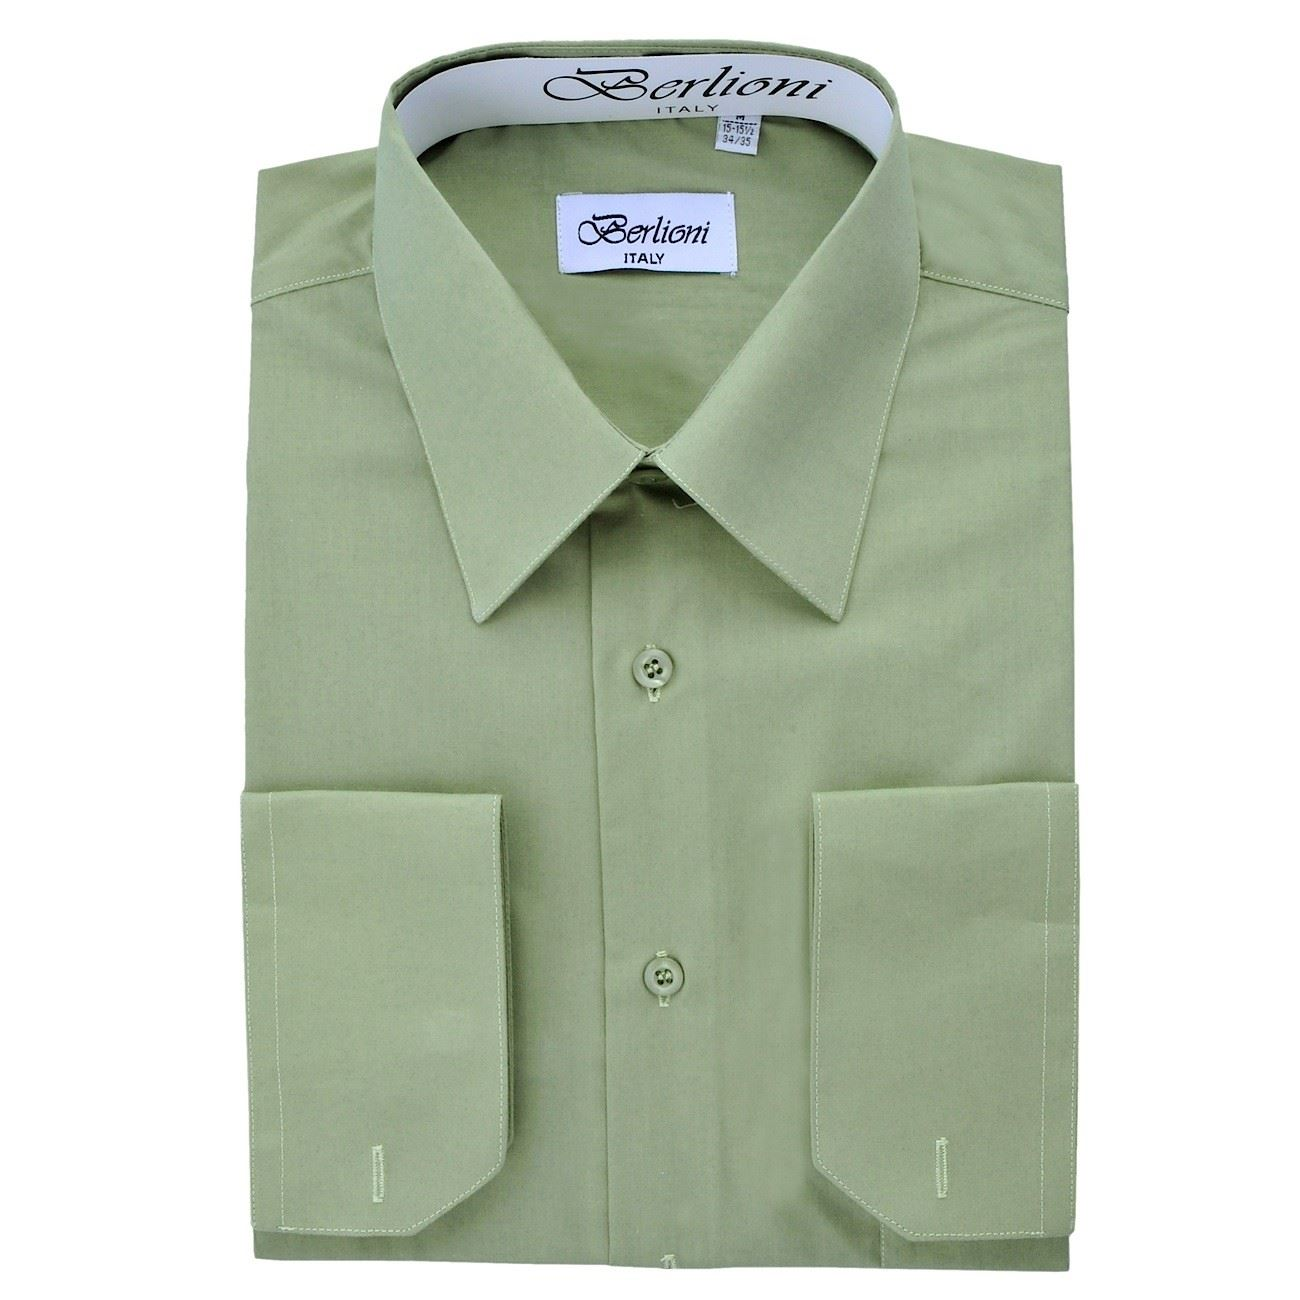 Berlioni italy men 39 s dress shirt french convertible cuff for Cuff shirts for men